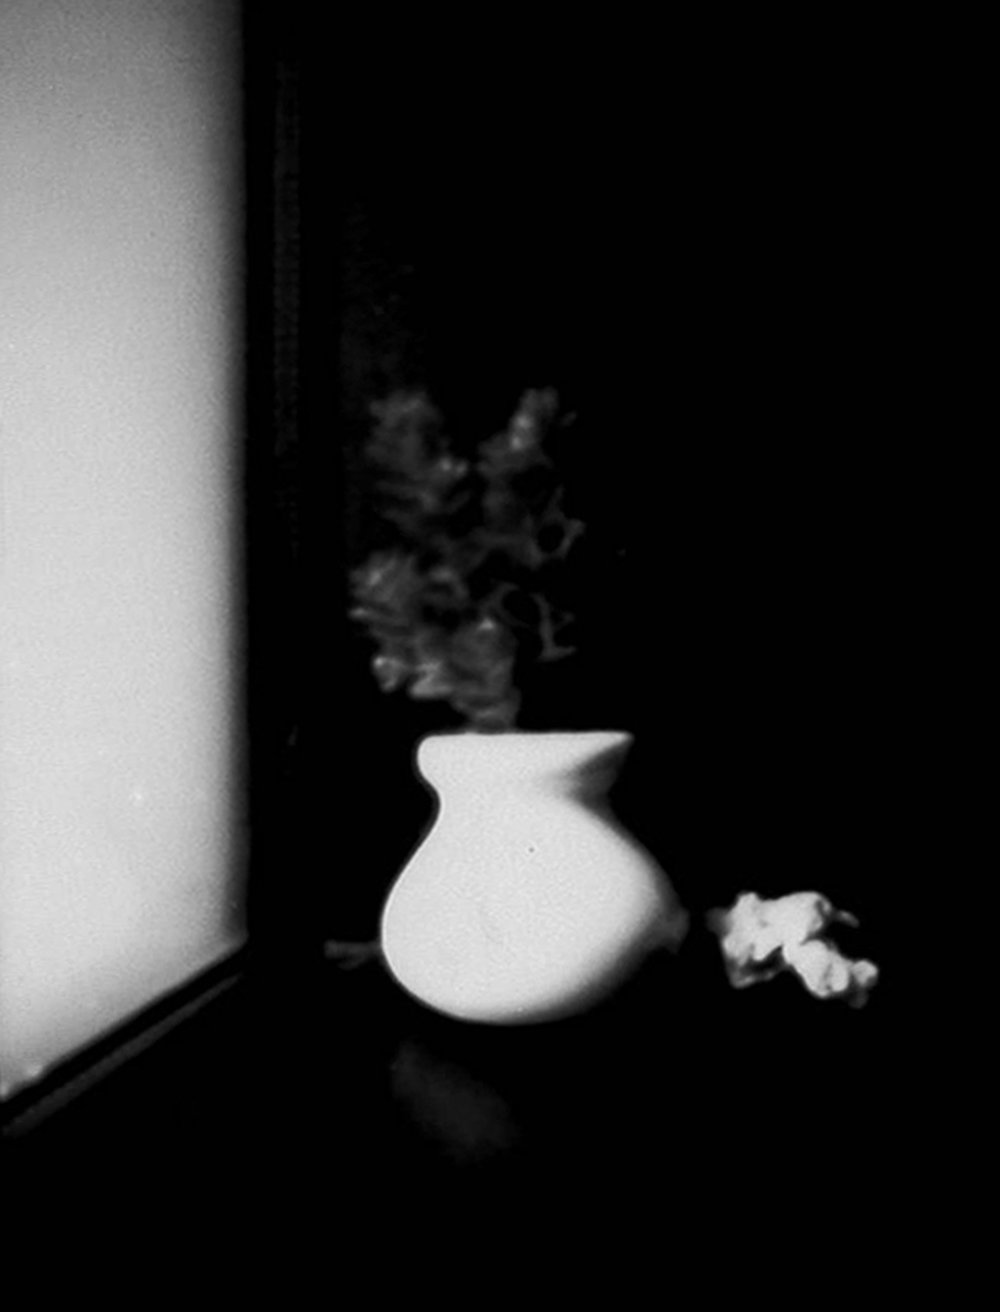 """Eden Harveson '19, Fort Worth Country Day Art Fundamentals  Still Life with Potted Plant  2016 Pinhole photograph 3"""" x 2.25"""""""